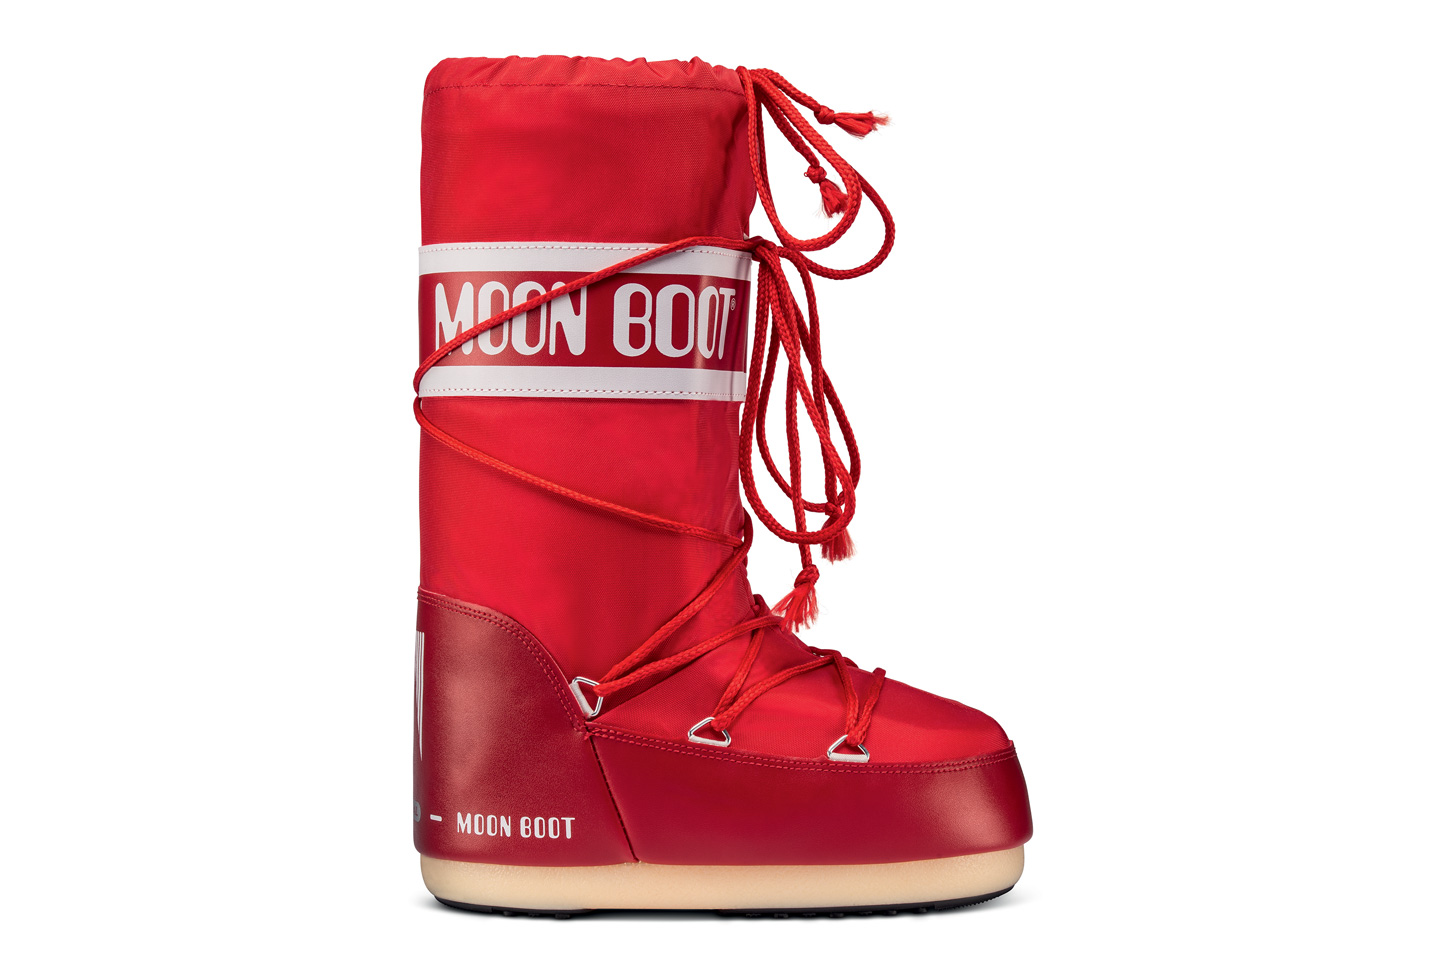 MOON-BOOT-CLASSIC_RED_14004400003